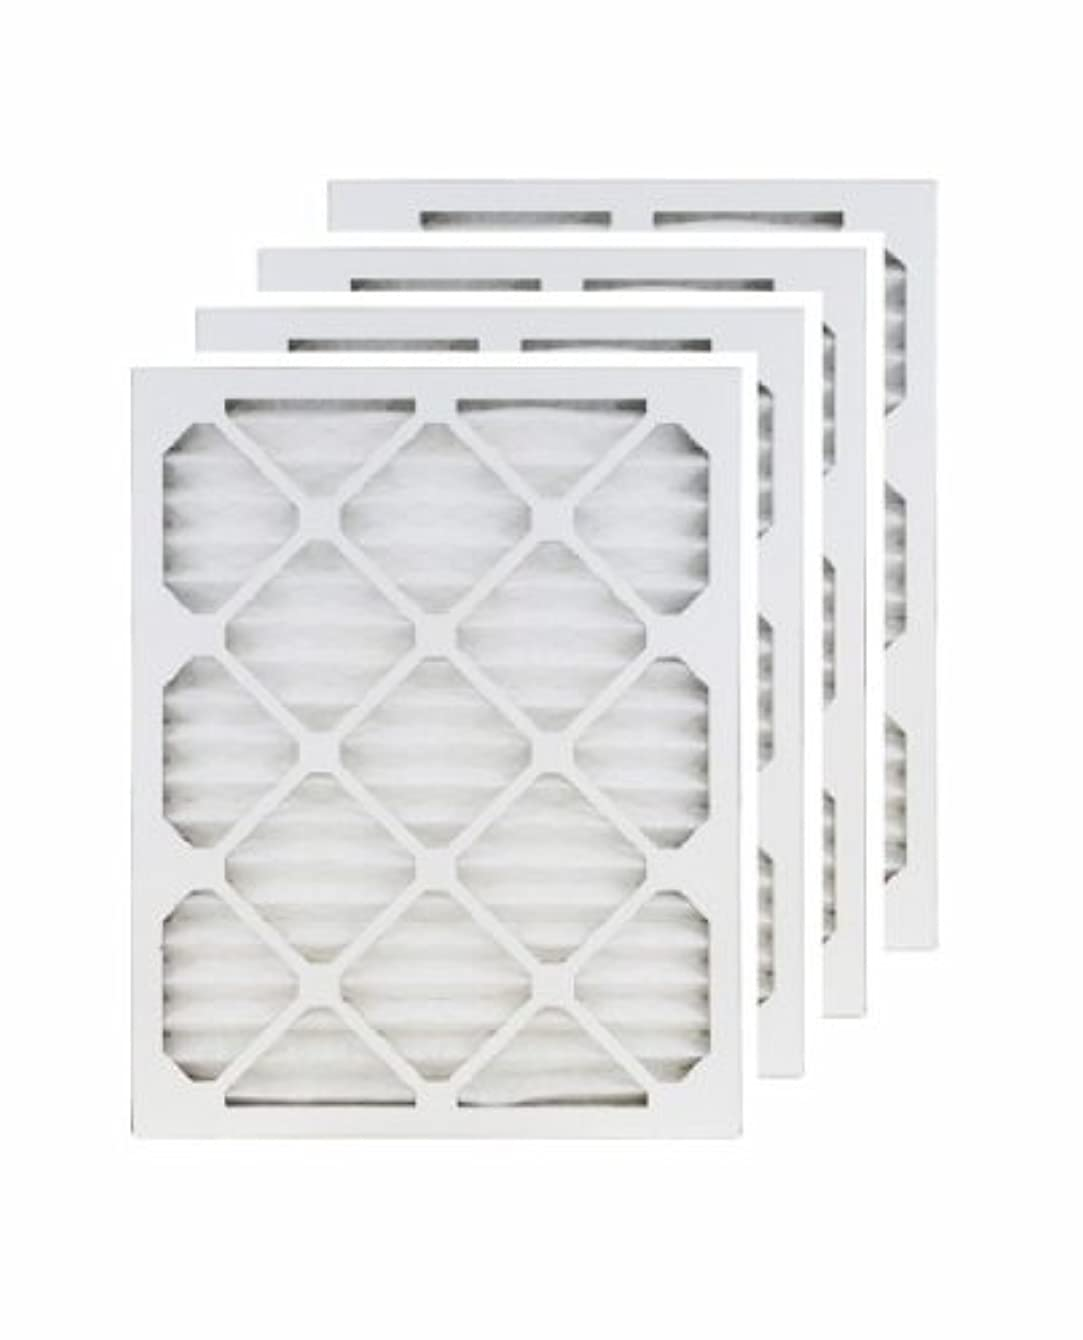 20x30x1 (19.5x29.5) MERV 13 Air Filter/Furnace Filters (4 pack) okfxppldqgpxy65